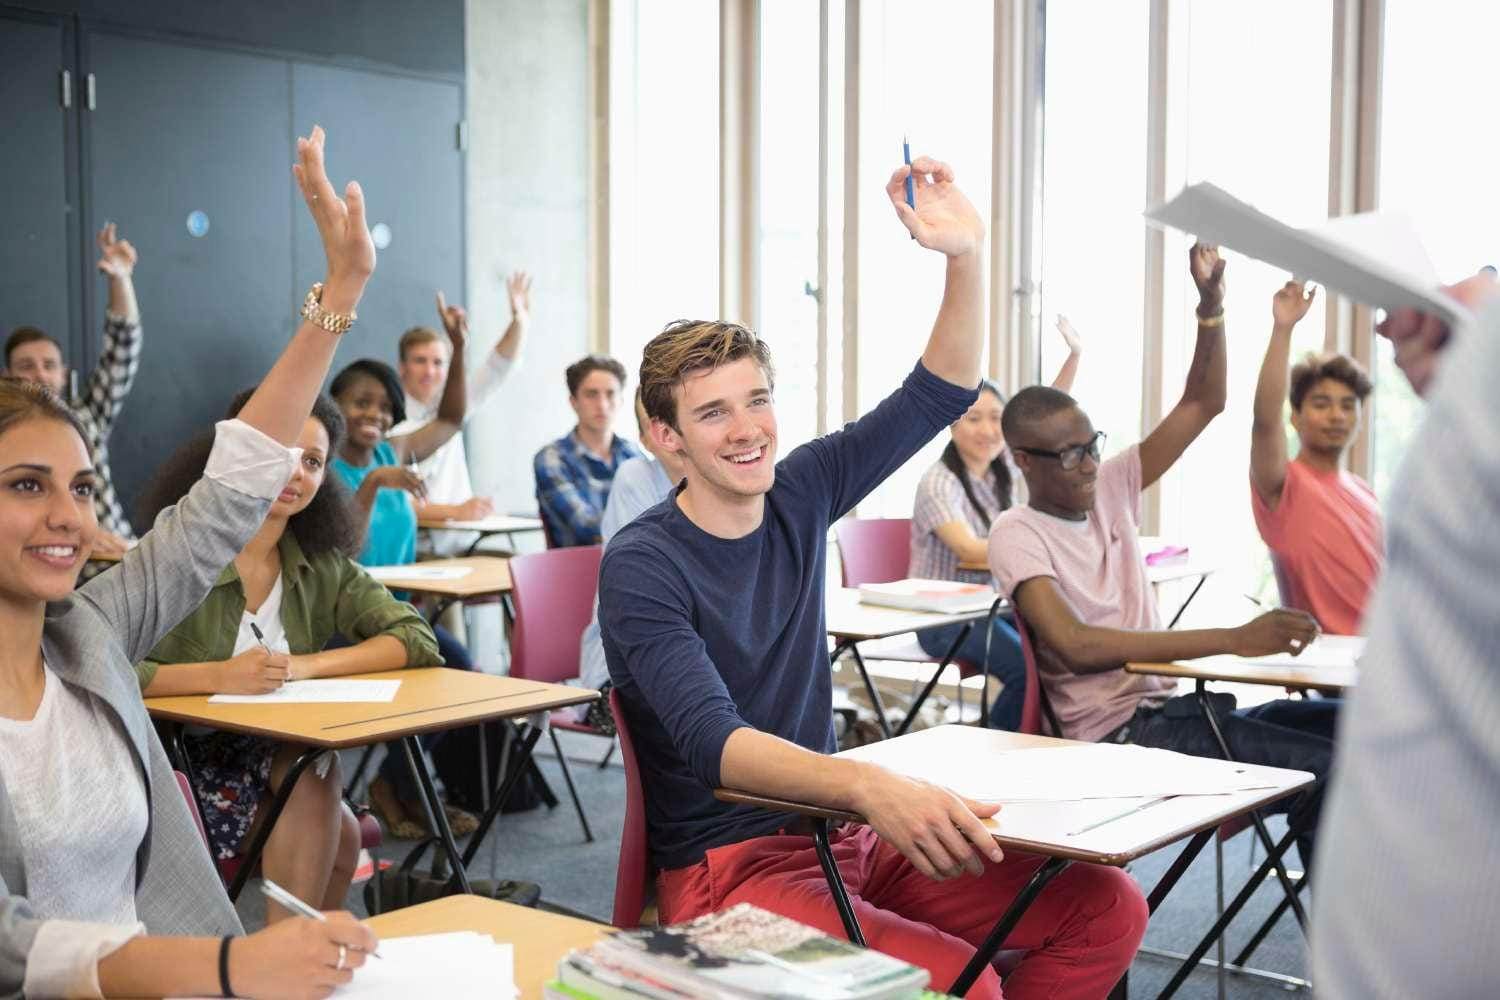 Group of high school students raising hands in a classroom